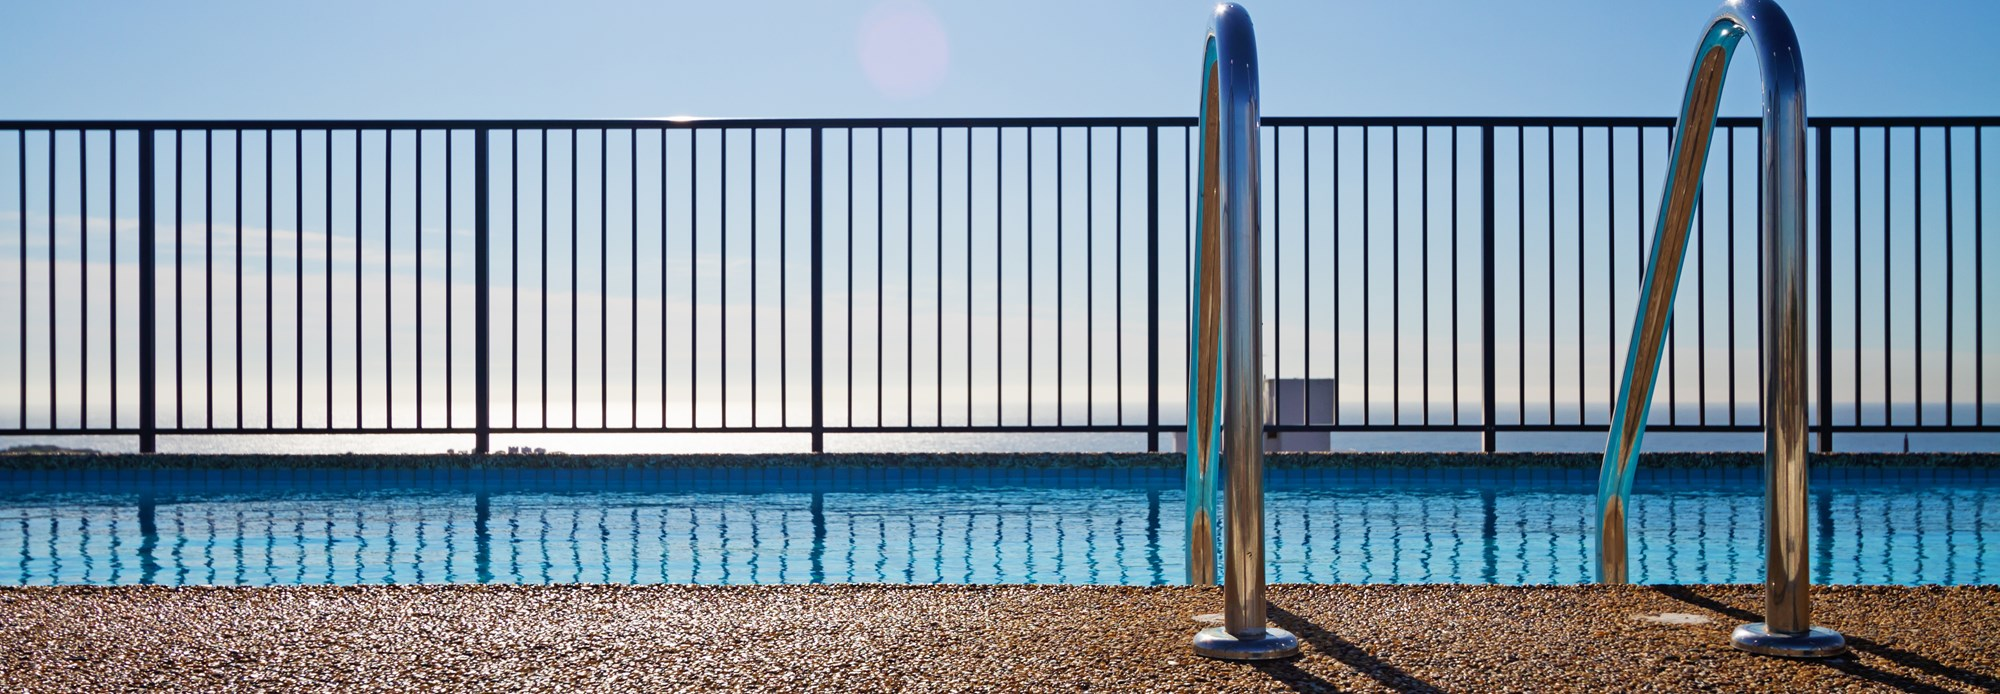 What Happens If Your Pool or Pool Barrier is Non-Compliant